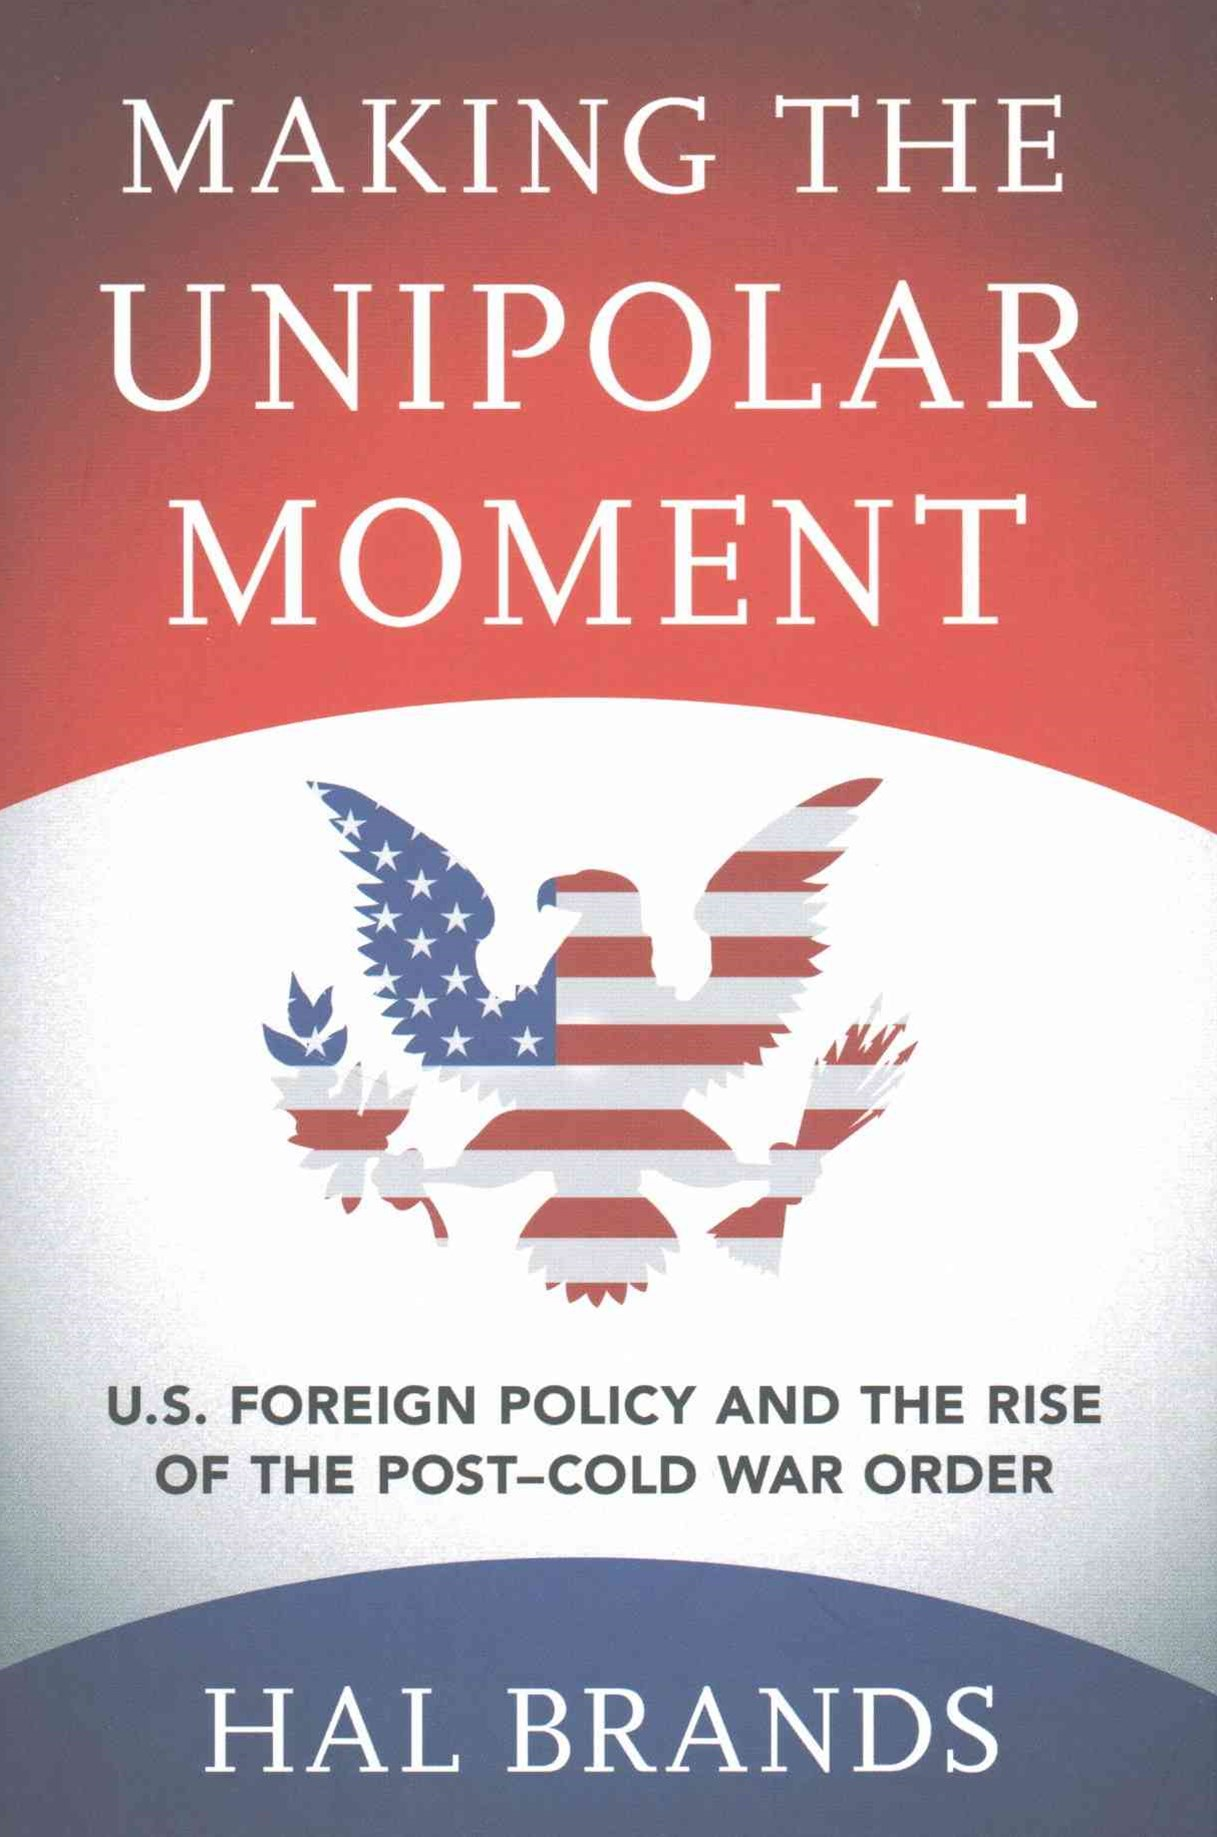 Making the Unipolar Moment